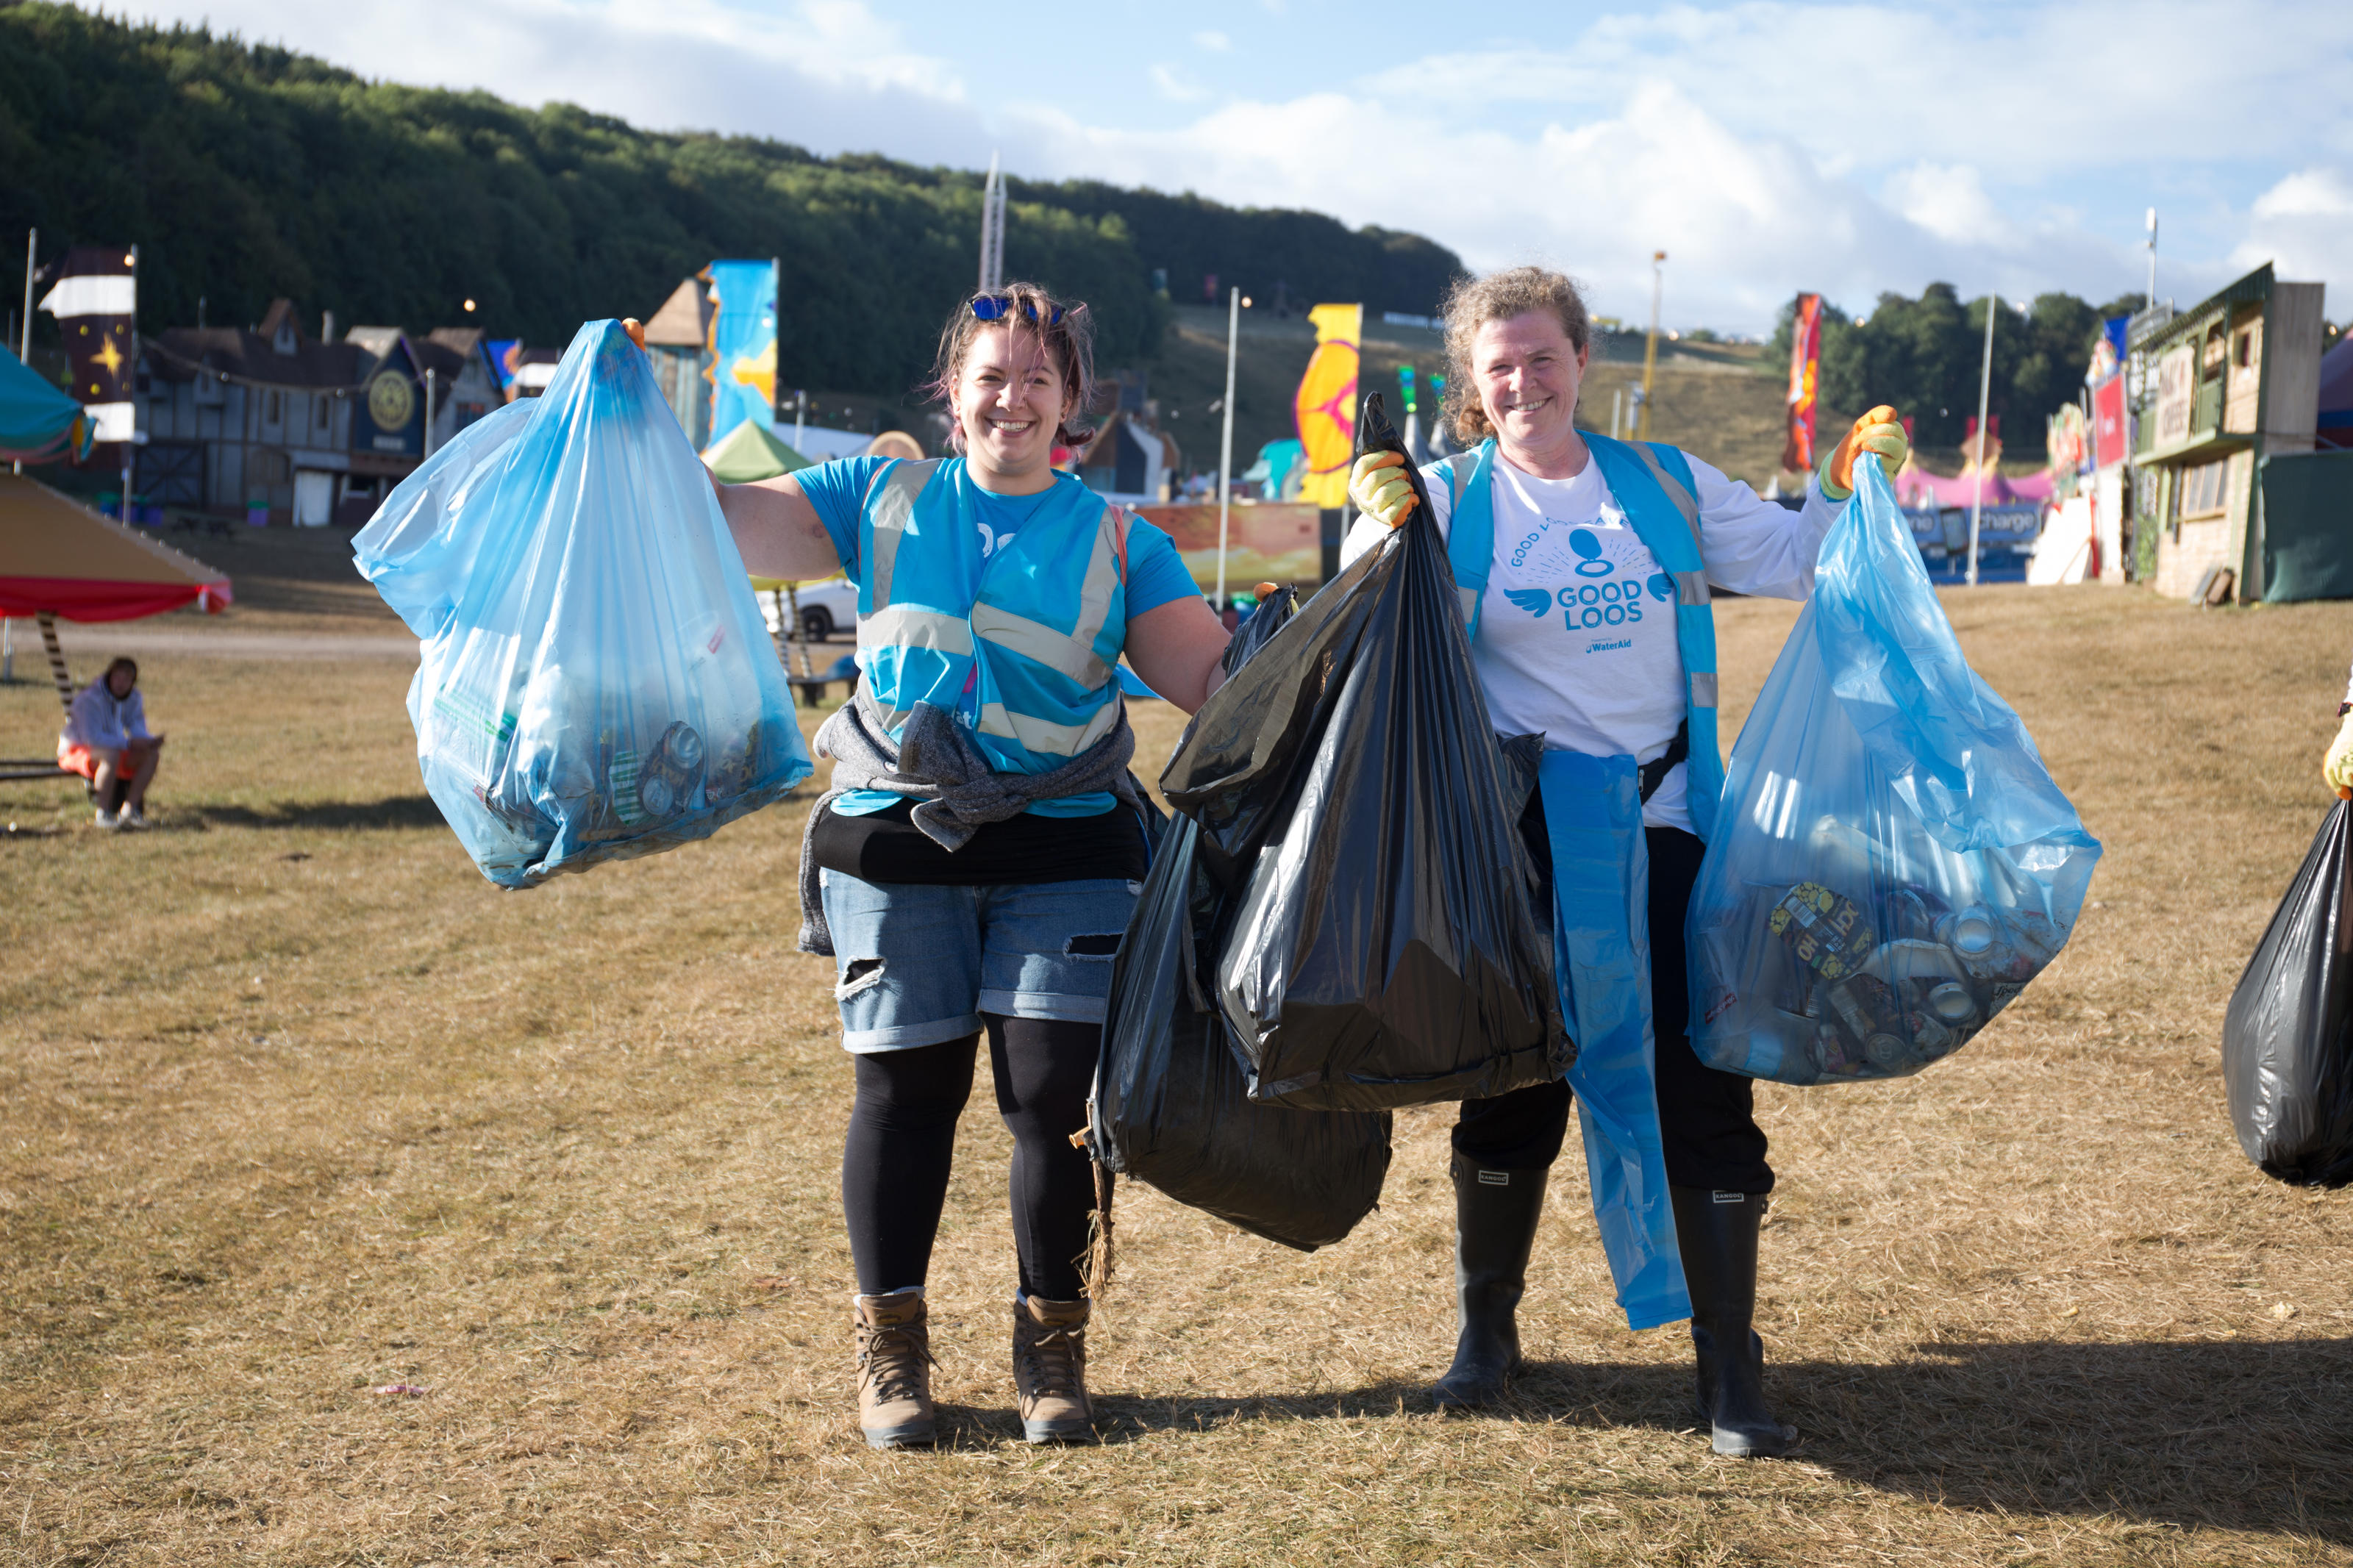 WaterAid volunteers Emma and June litter picking at Boomtown festival